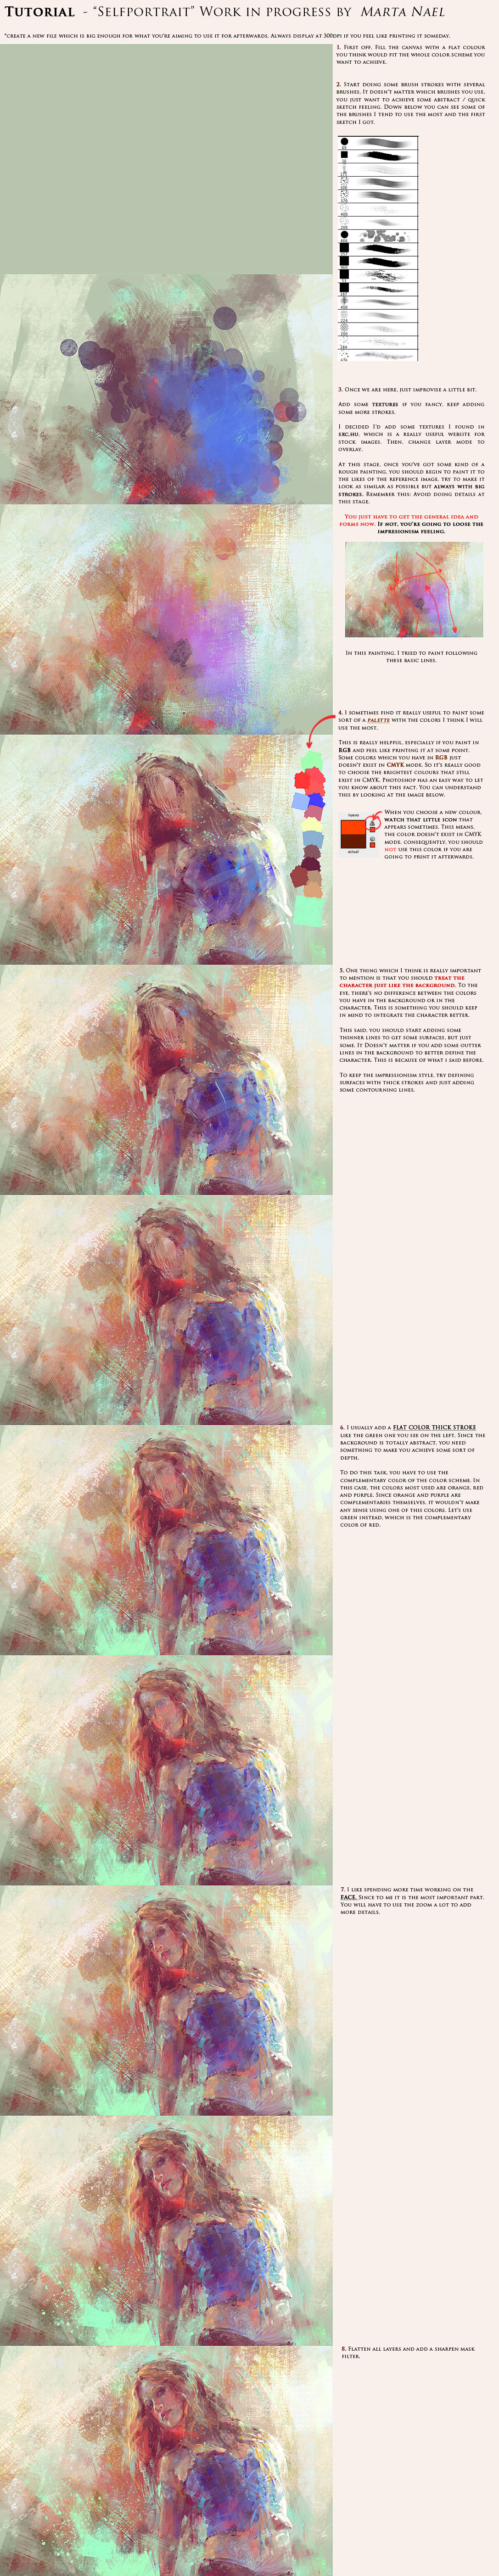 Digital impressionism tutorial by martanael on deviantart digital impressionism tutorial by martanael digital impressionism tutorial by martanael baditri Choice Image